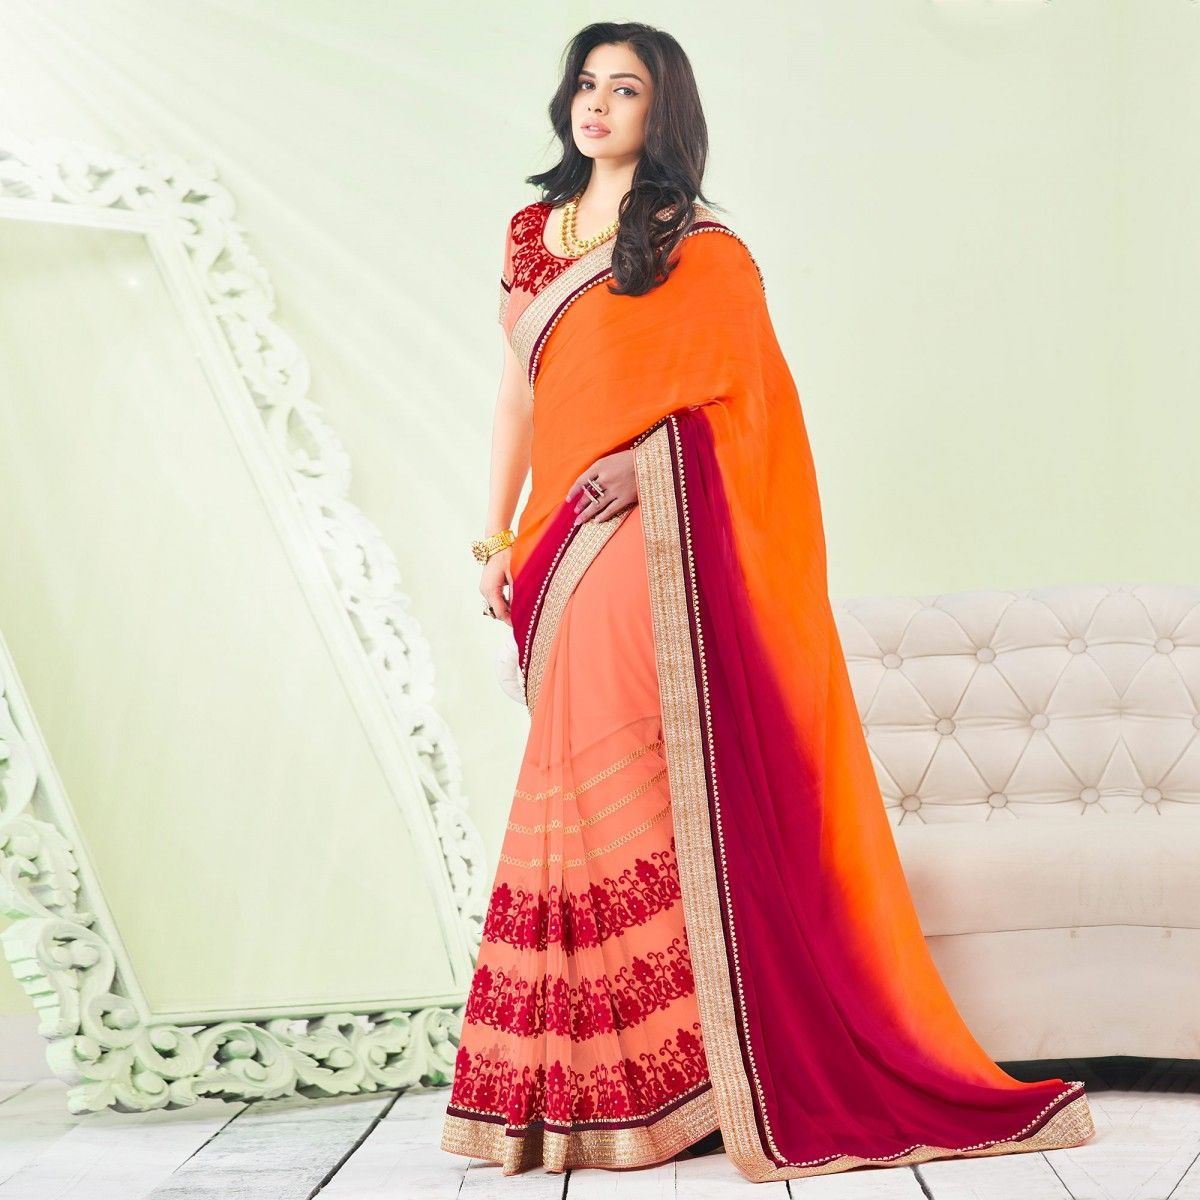 1b9c932a65 Buy Shaded Orange - Peach Georgette Saree for womens online India, Best  Prices, Reviews - Peachmode